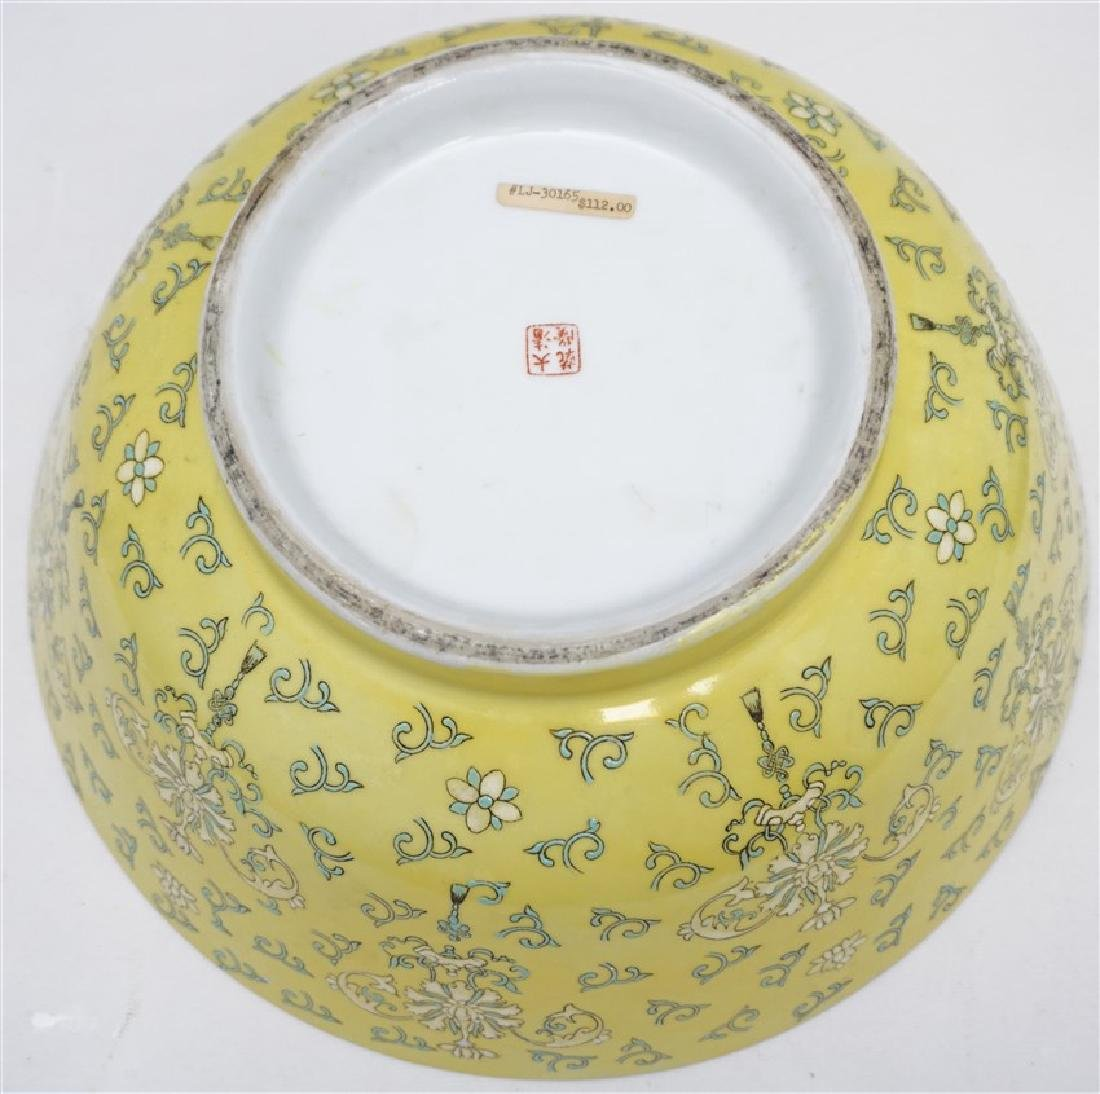 LARGE CHINESE EXPORT PUNCH BOWL - 7